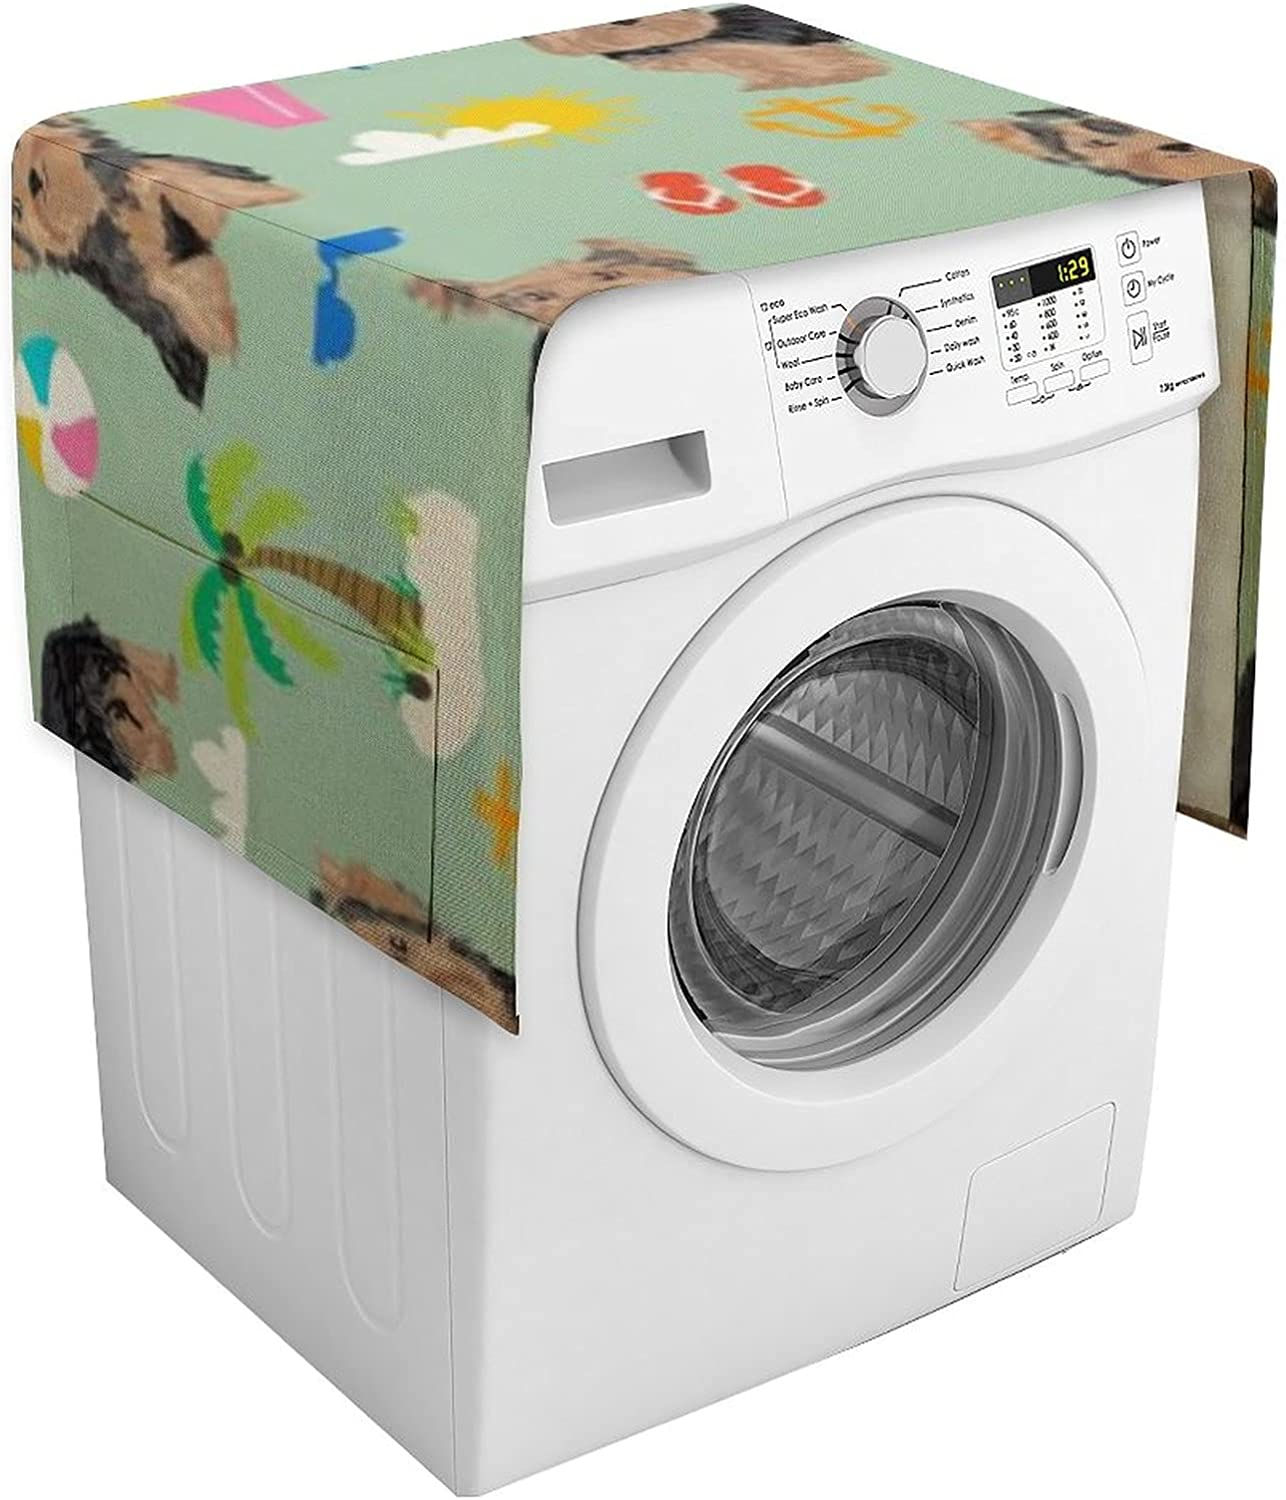 Multi-Purpose Washing Machine Covers Appliance Oklahoma City Mall Sale Special Price Protector Washer